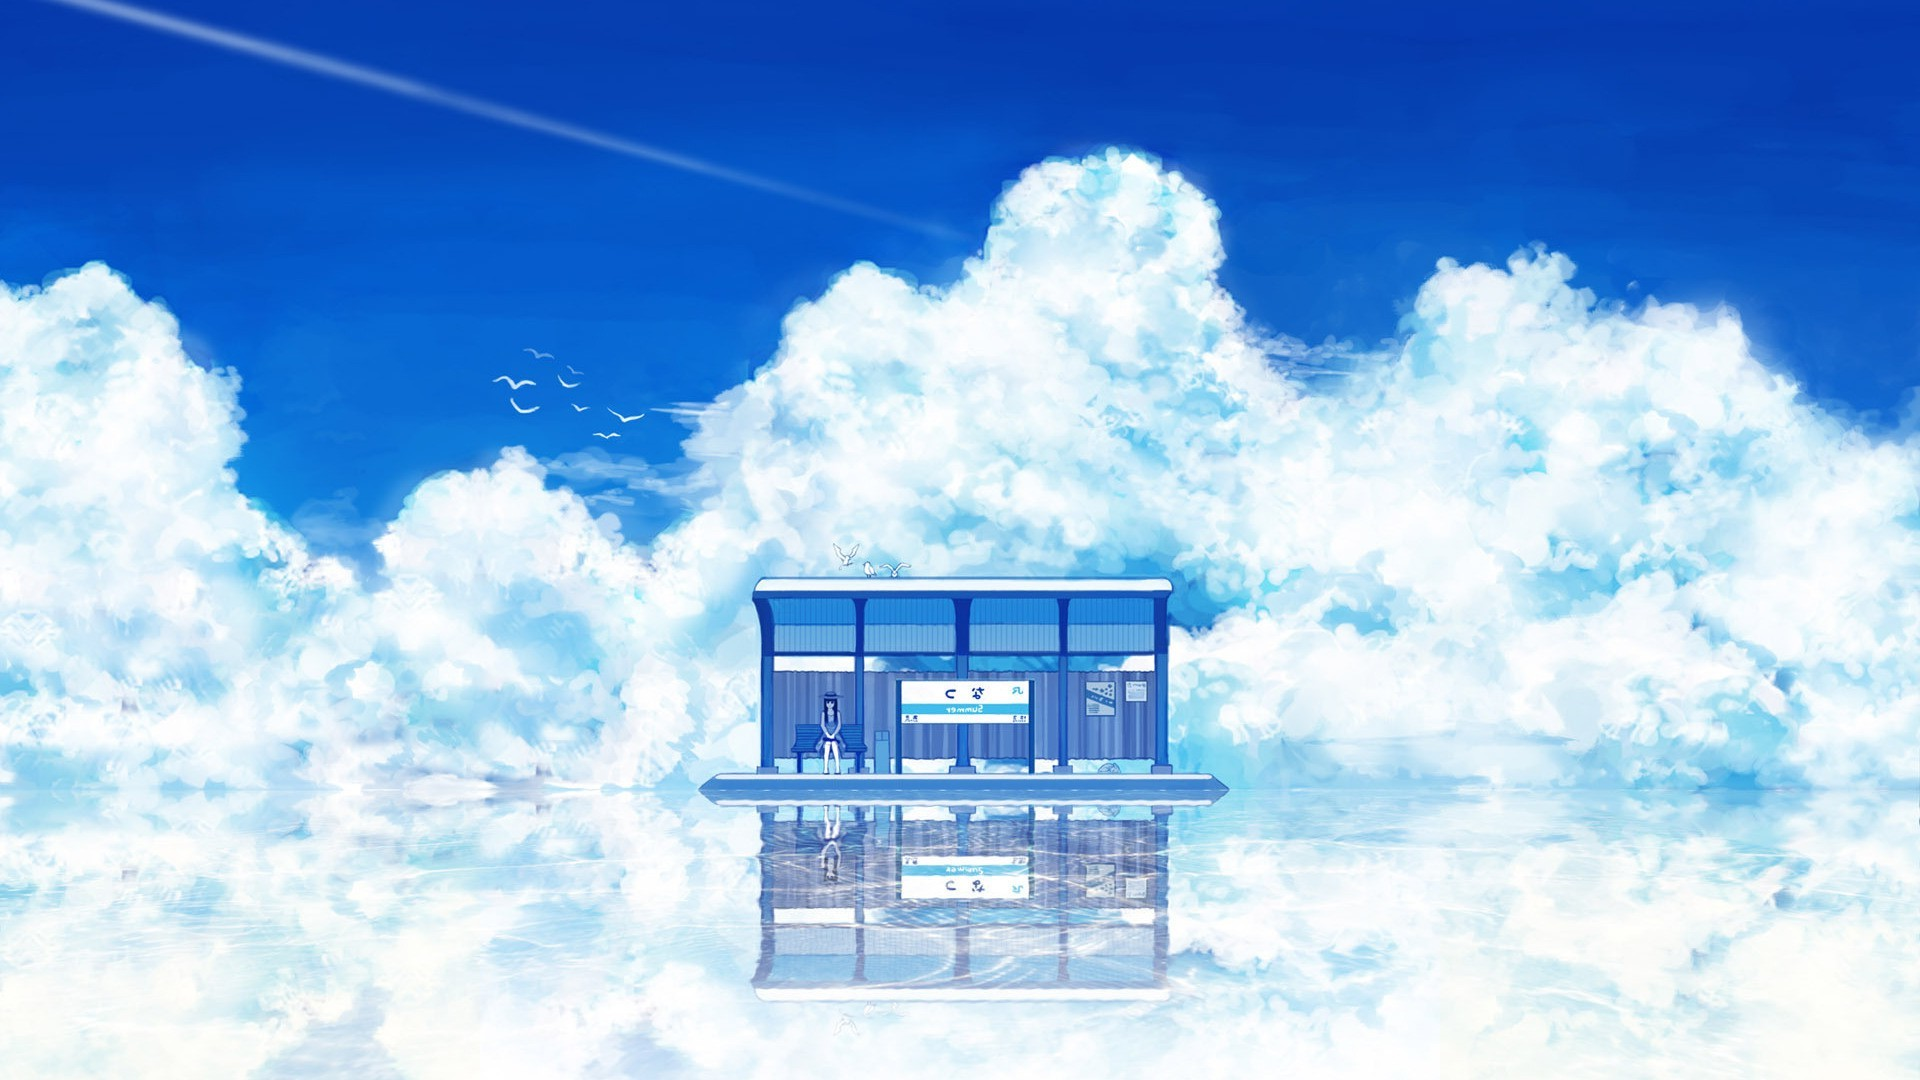 anime, Artwork, Fantasy Art, Clouds, Sky Wallpapers HD / Desktop and Mobile  Backgrounds